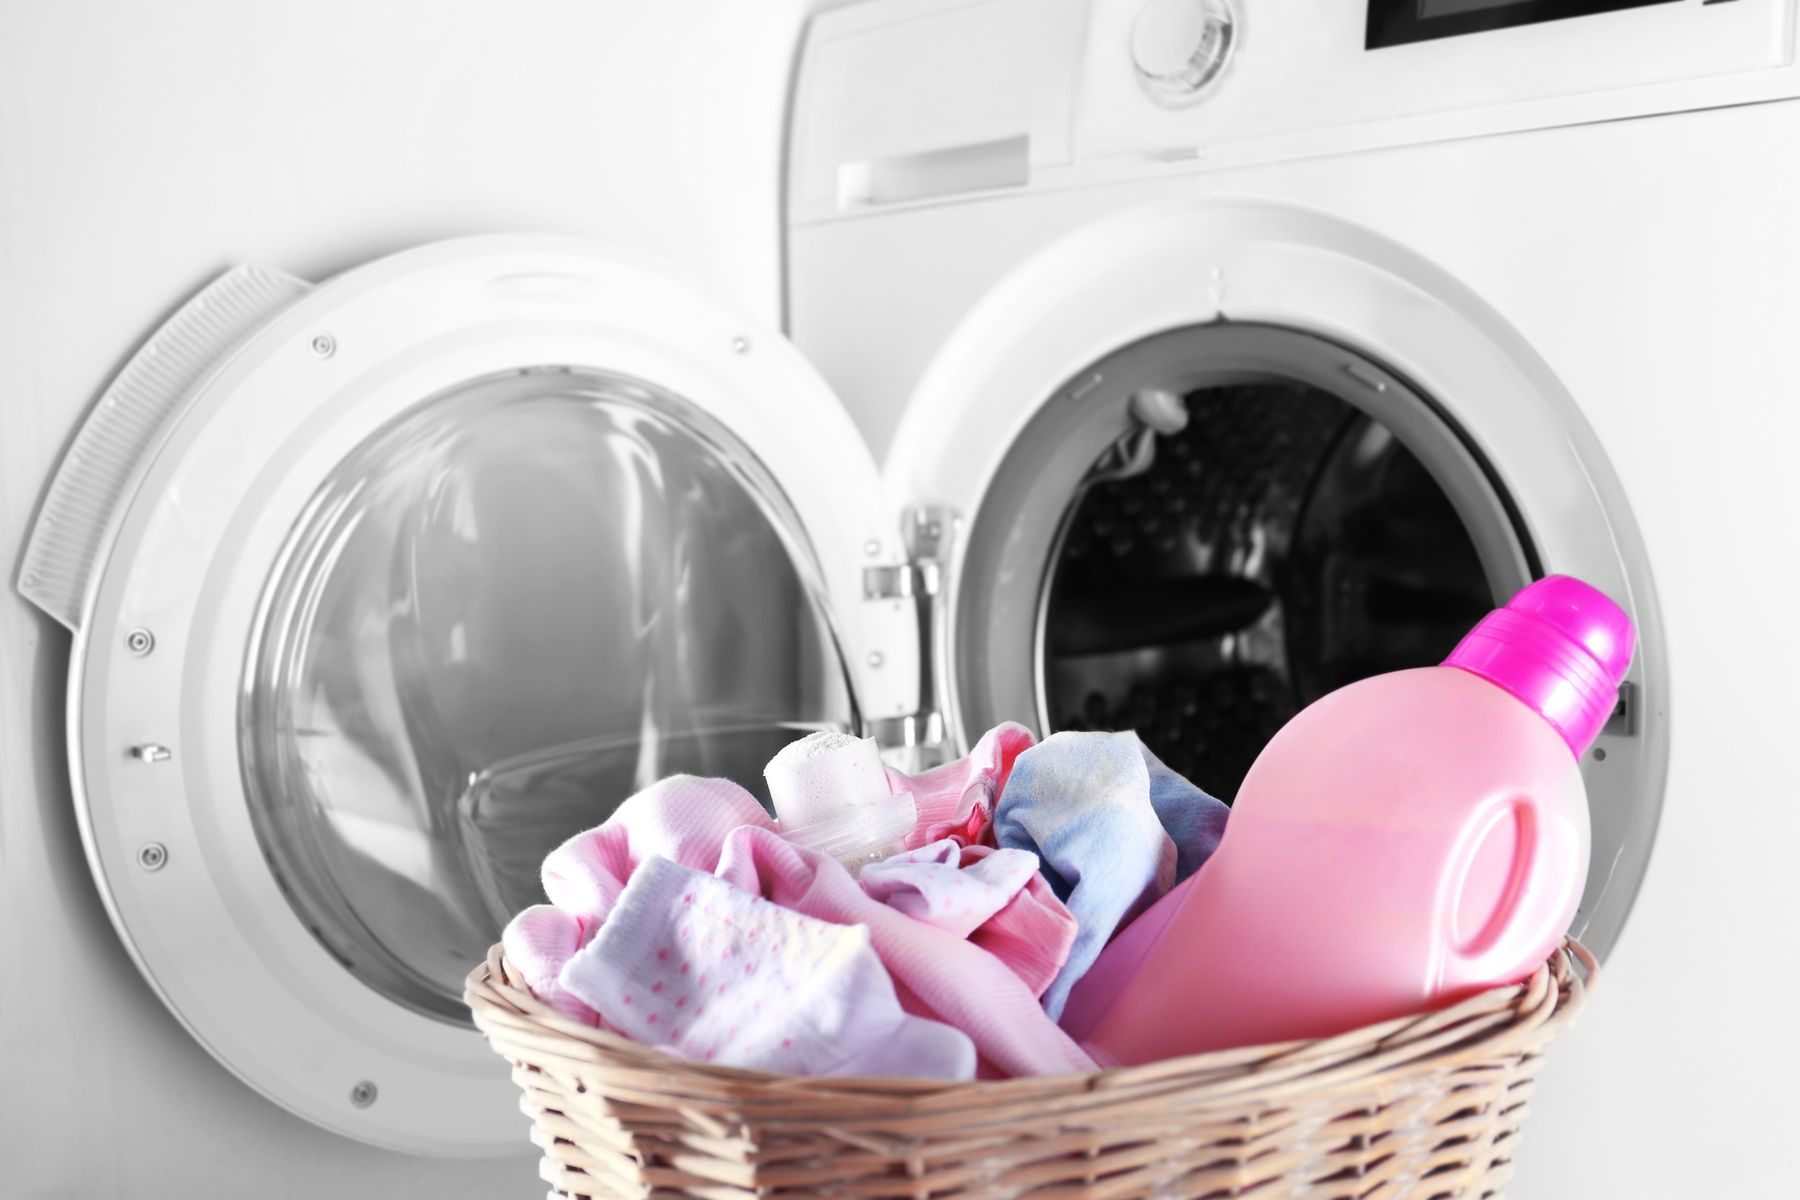 How to Use Fabric Conditioner: Tips and Tricks for Keeping your Clothes Clean and Soft